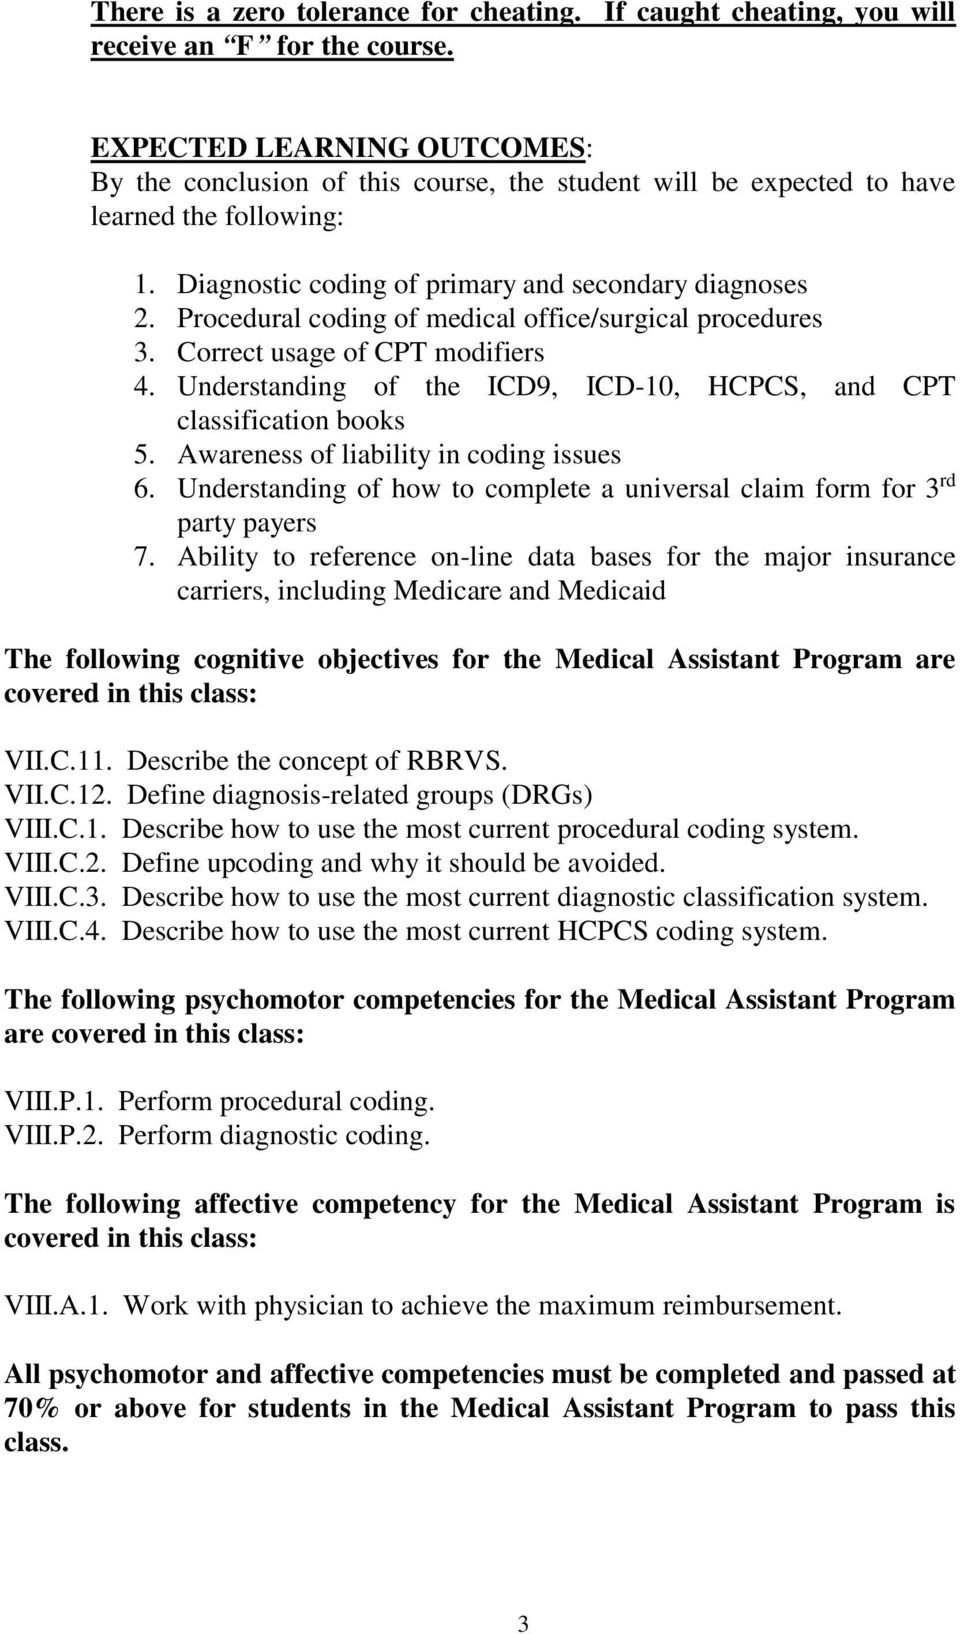 Procedural coding of medical office/surgical procedures 3. Correct usage of CPT modifiers 4. Understanding of the ICD9, ICD-10, HCPCS, and CPT classification books 5.